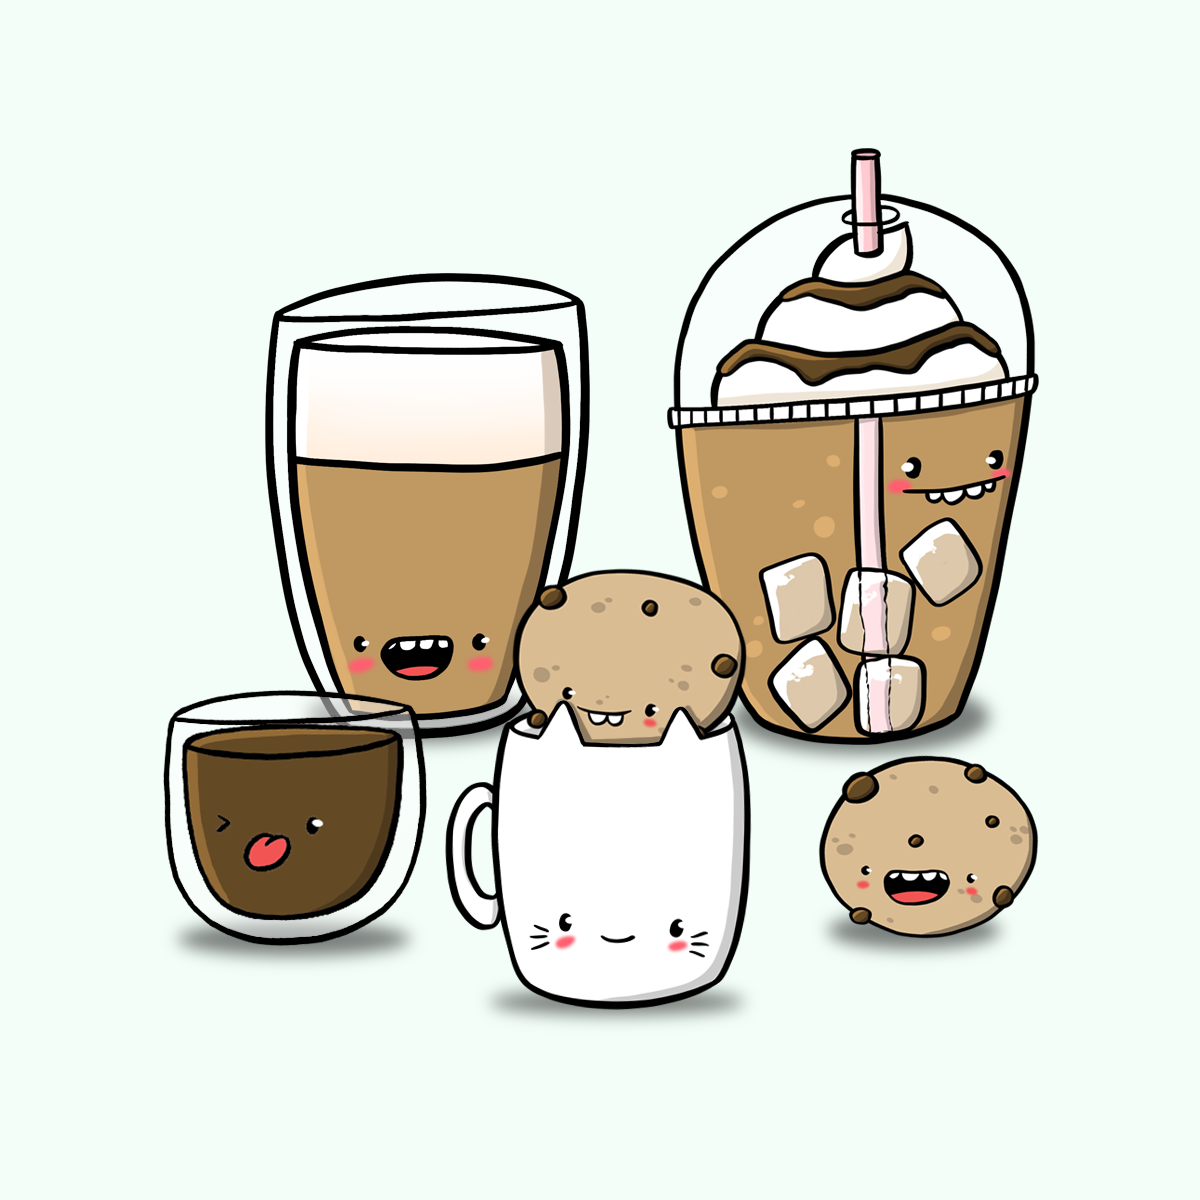 Coffee Illustration By Gladyspnut Doodle Coffee Cookies Procreate Digitalartist Kawaii Kawaii Kawaii Art Kawaii Char Coffee Doodle Cofee Art Doodles